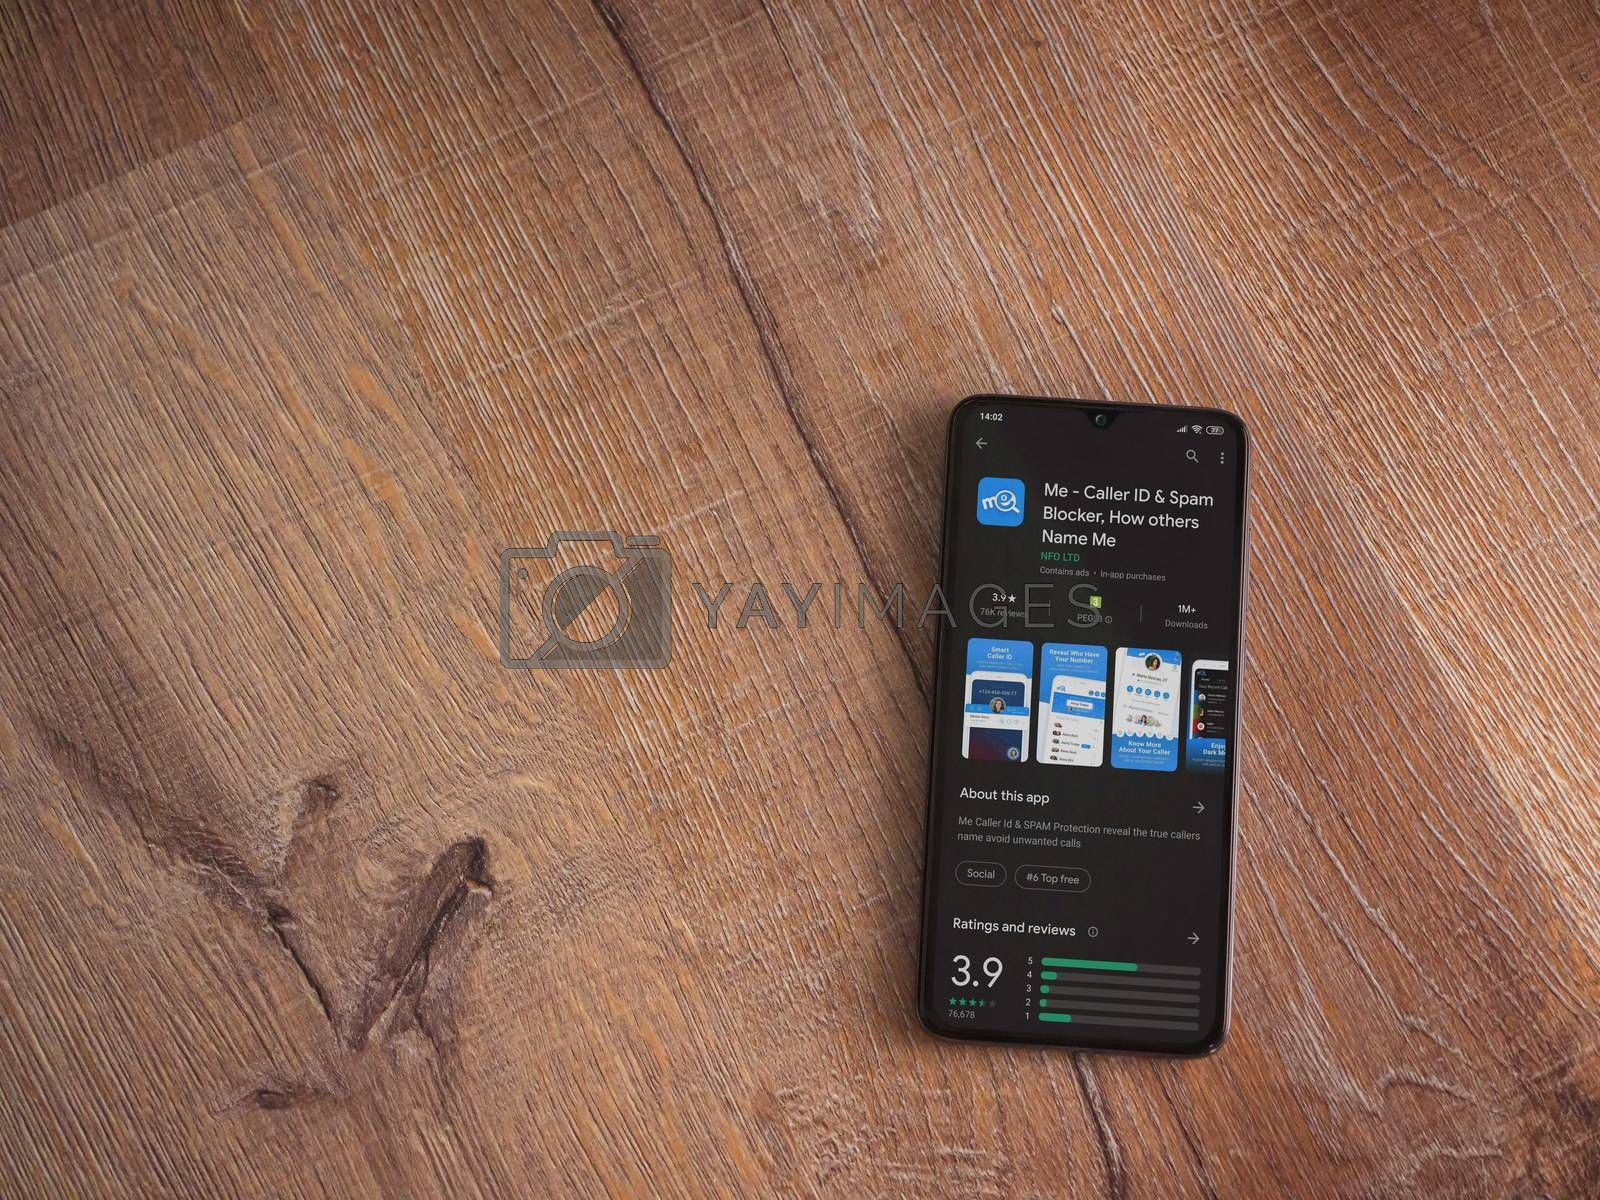 Lod, Israel - July 8, 2020: Me app play store page on the display of a black mobile smartphone on wooden background. Top view flat lay with copy space.